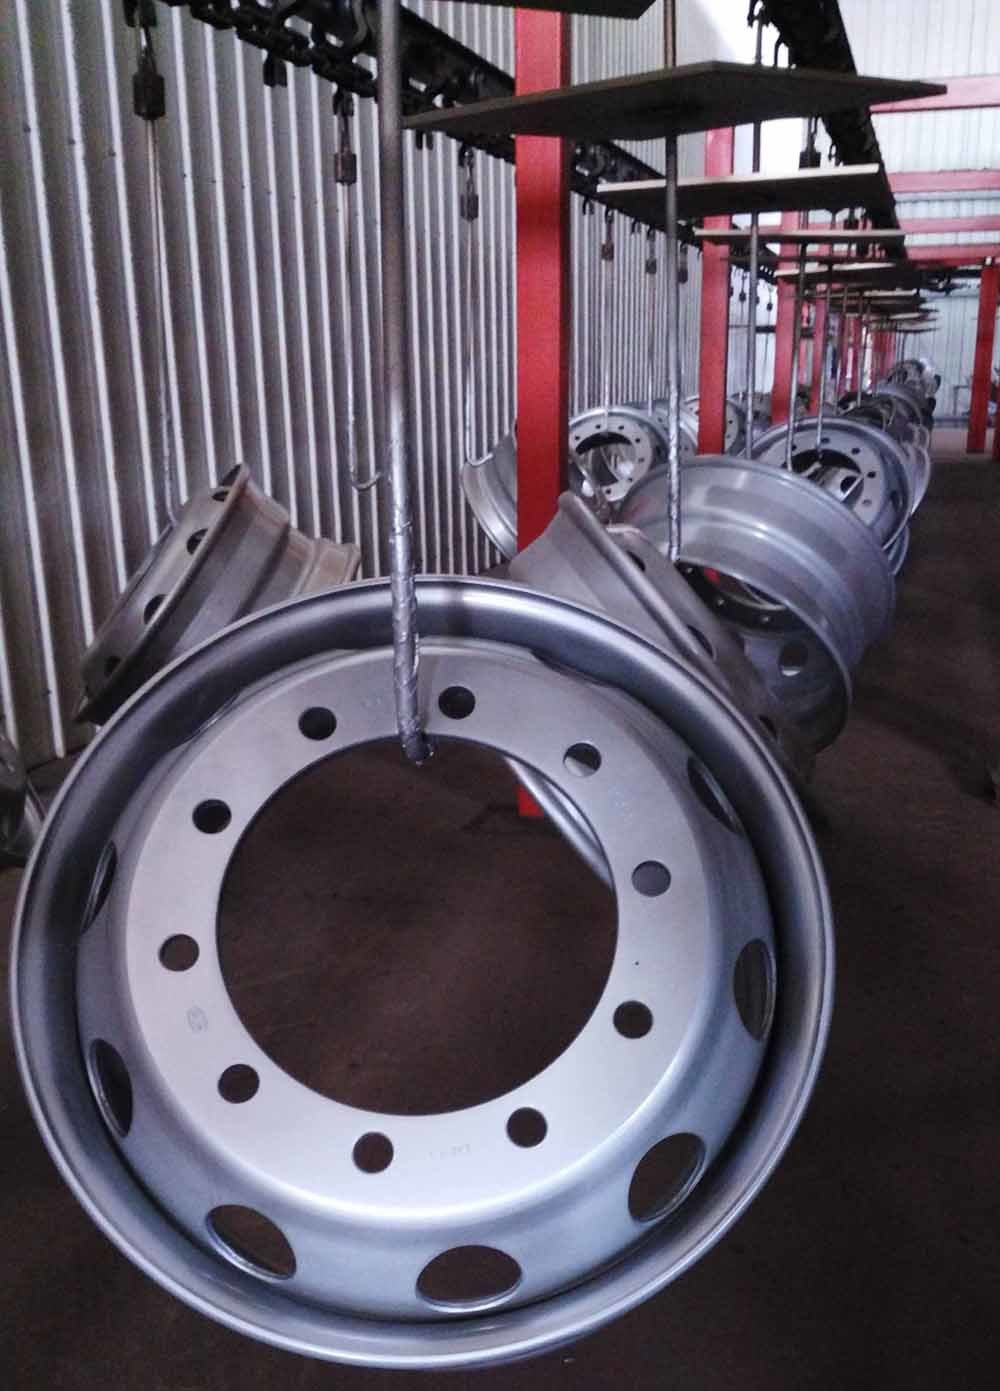 Truck/Trailer/Bus OEM Factory Steel Wheel Rims (8.5-24, 22.5*9.00, 22.5X8.25/11.75, 8.00V-20)